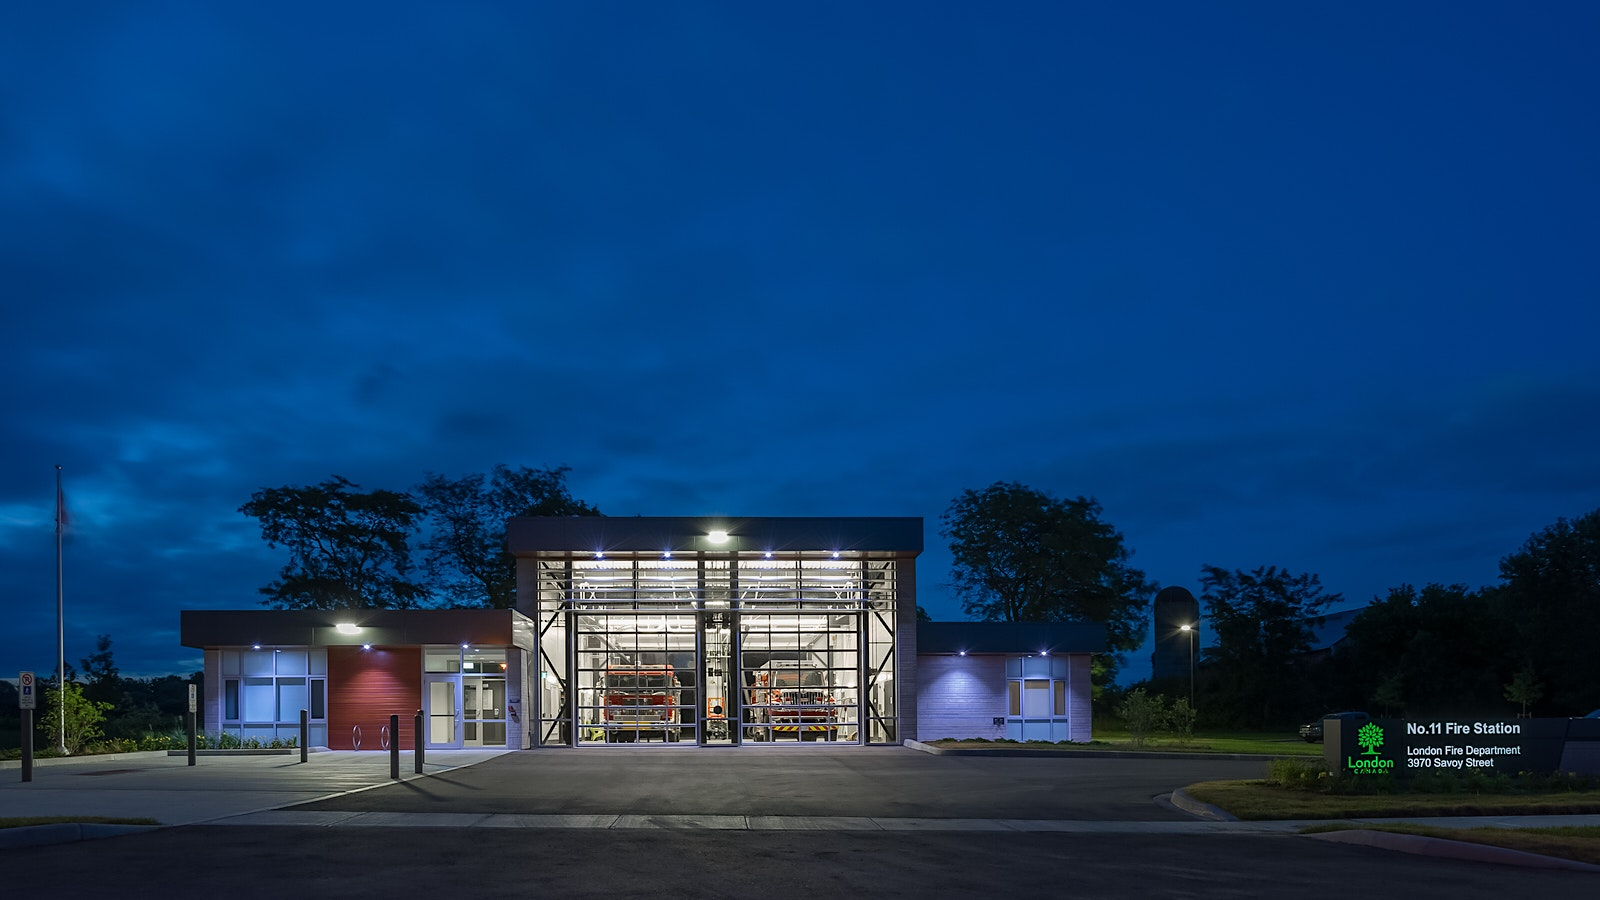 Twilight architectural photo of No.11 Fire Station by Scott Webb Photography